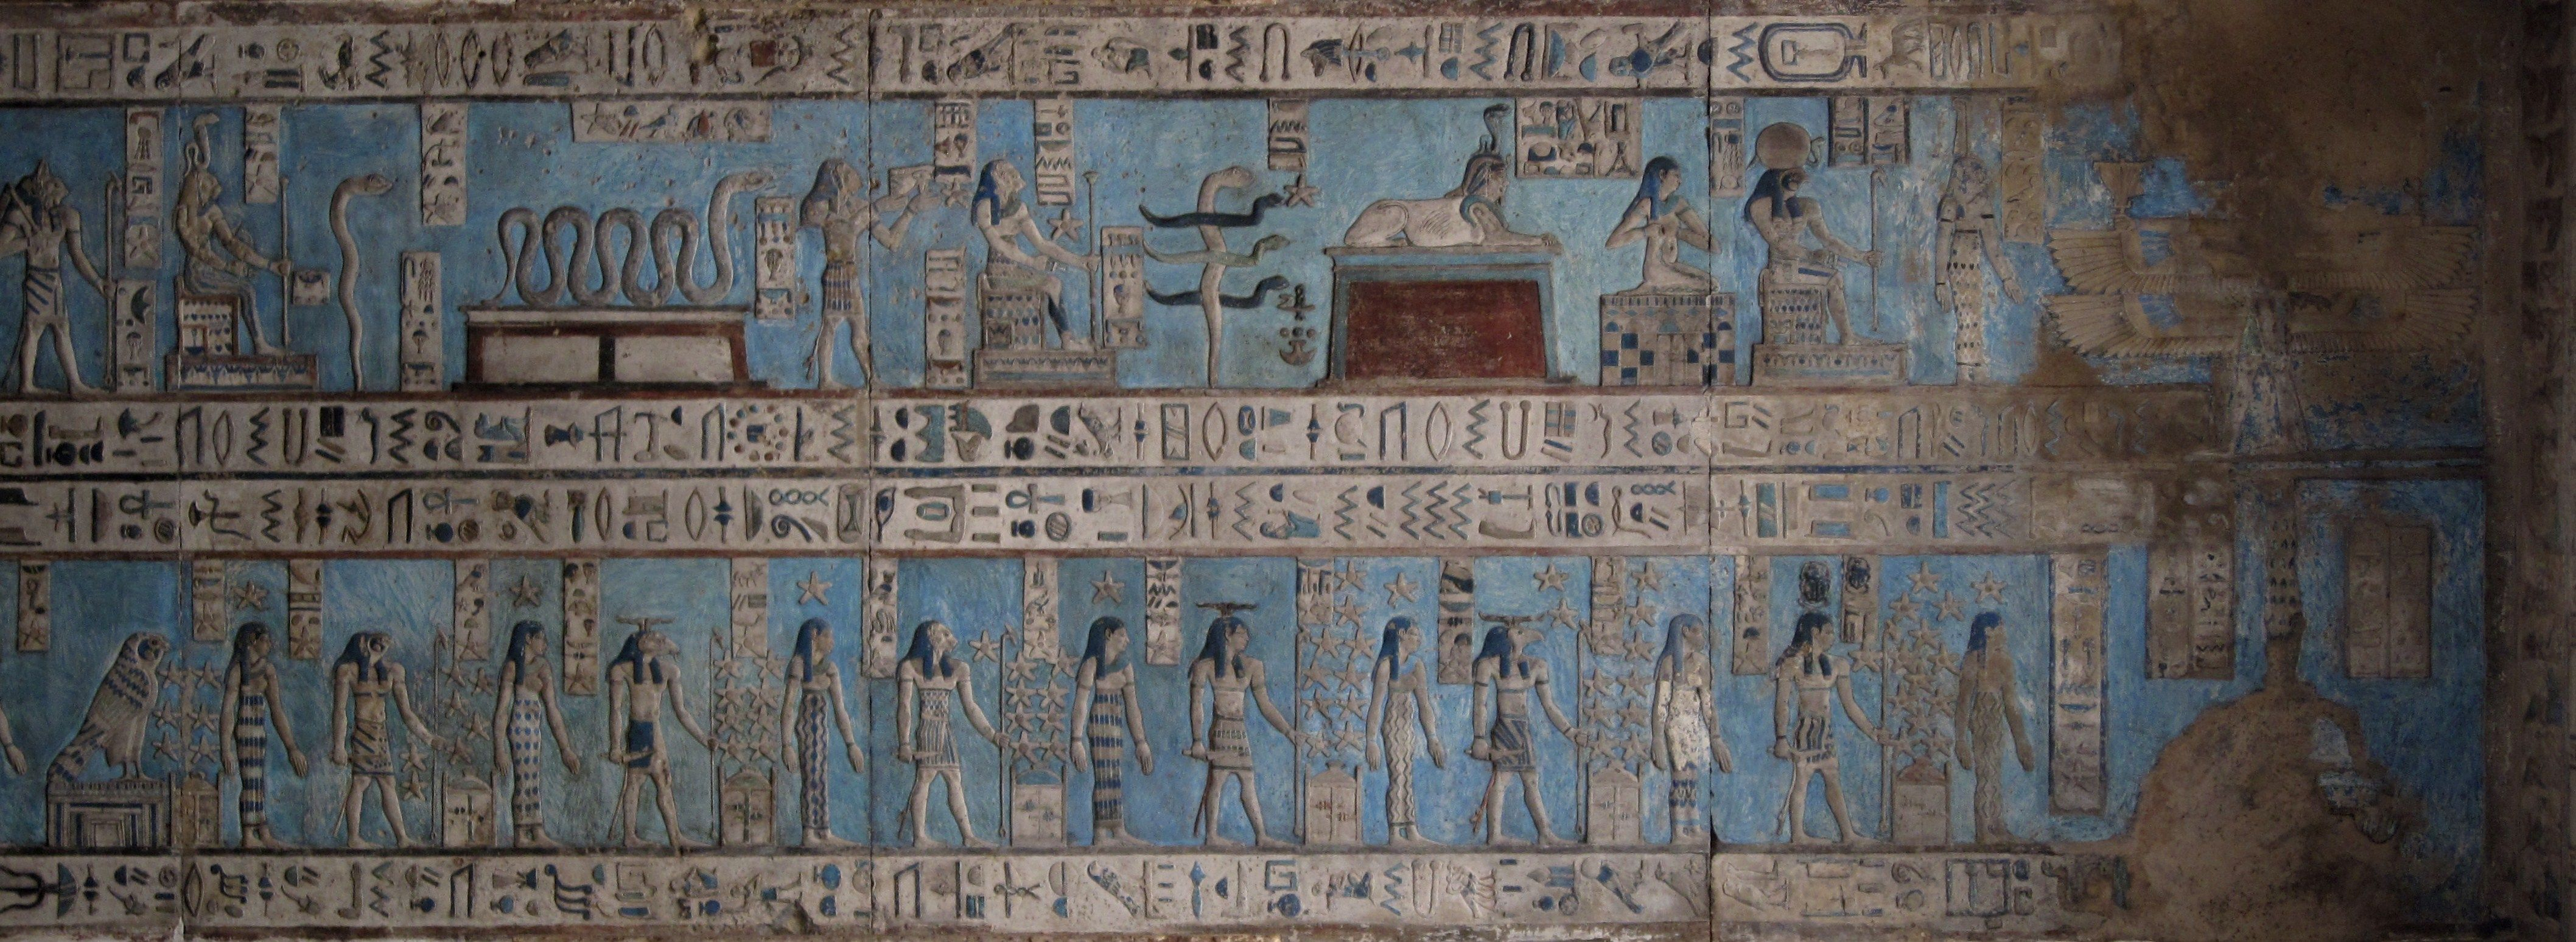 Temple frieze only clipart svg freeuse stock painted frieze, temple of dendera   HOME - EGYPTIAN   Egypt ... svg freeuse stock